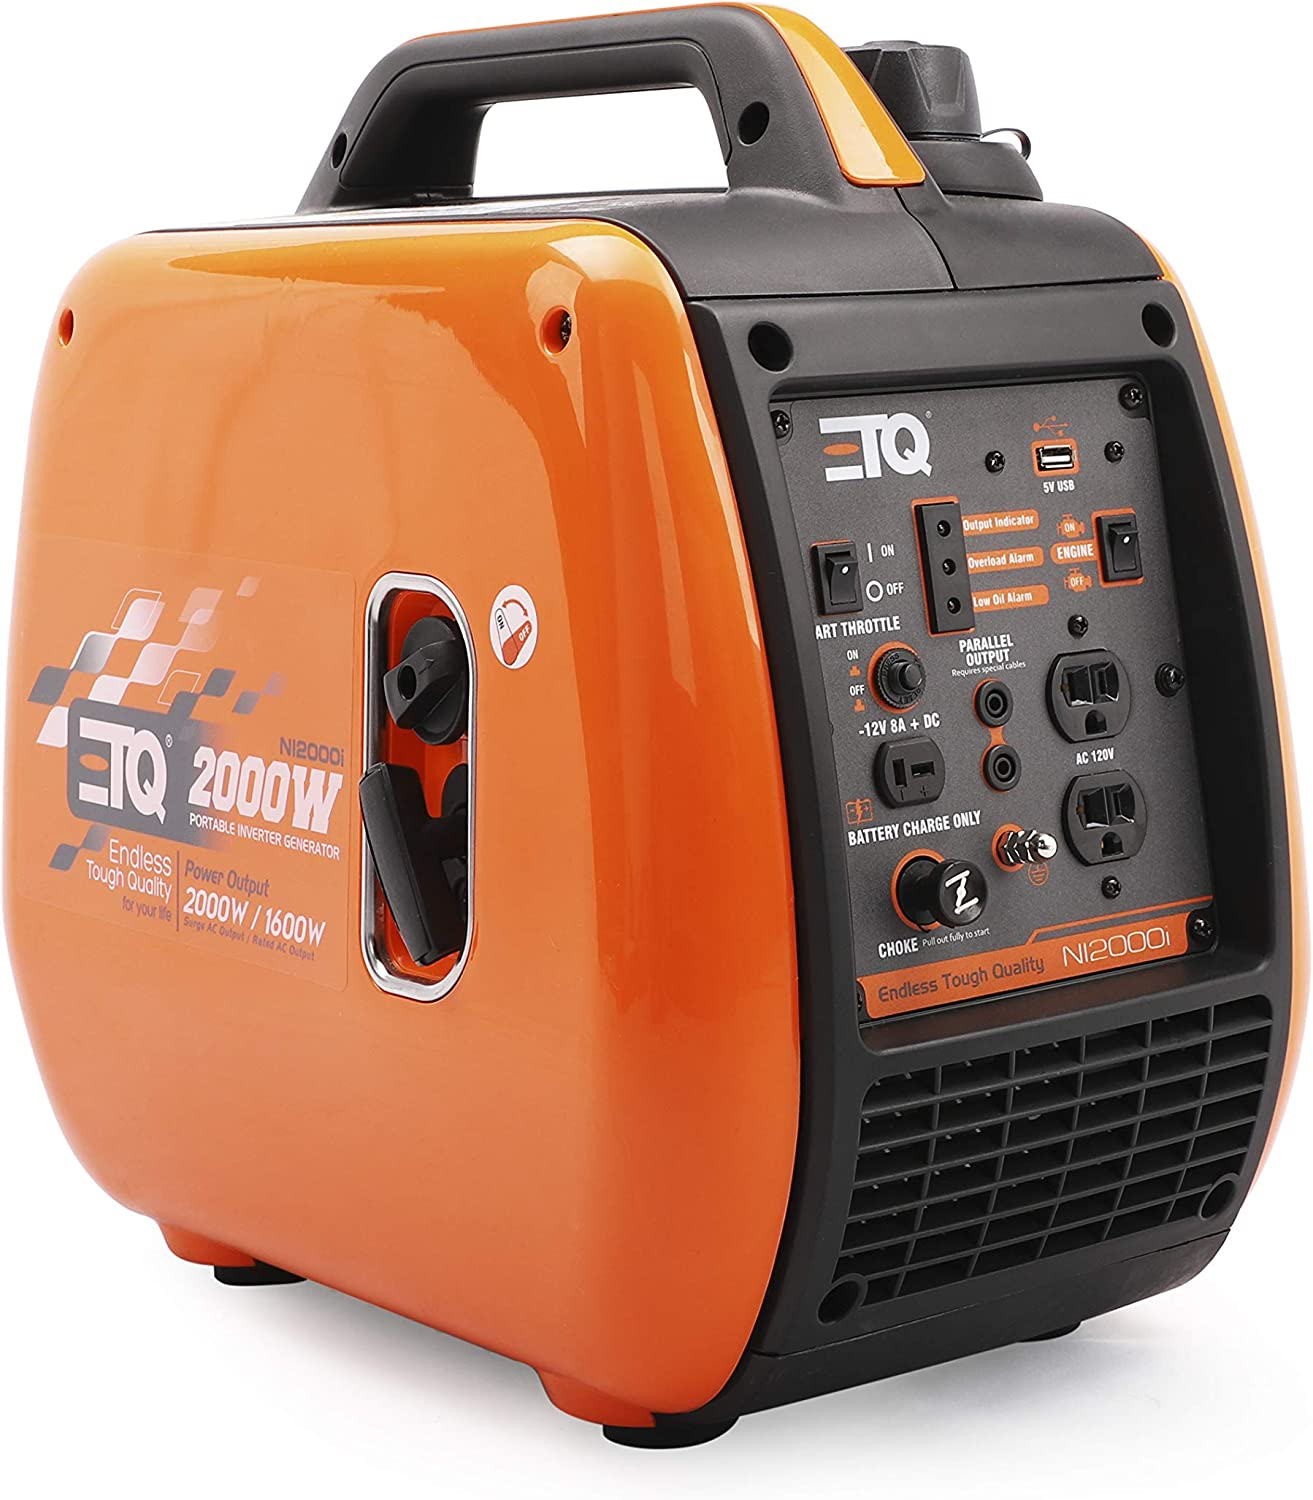 Etq 2000 Super beauty product restock quality top Watt Gas Powered Inverter CARB Generator with 5 ☆ very popular Compliant